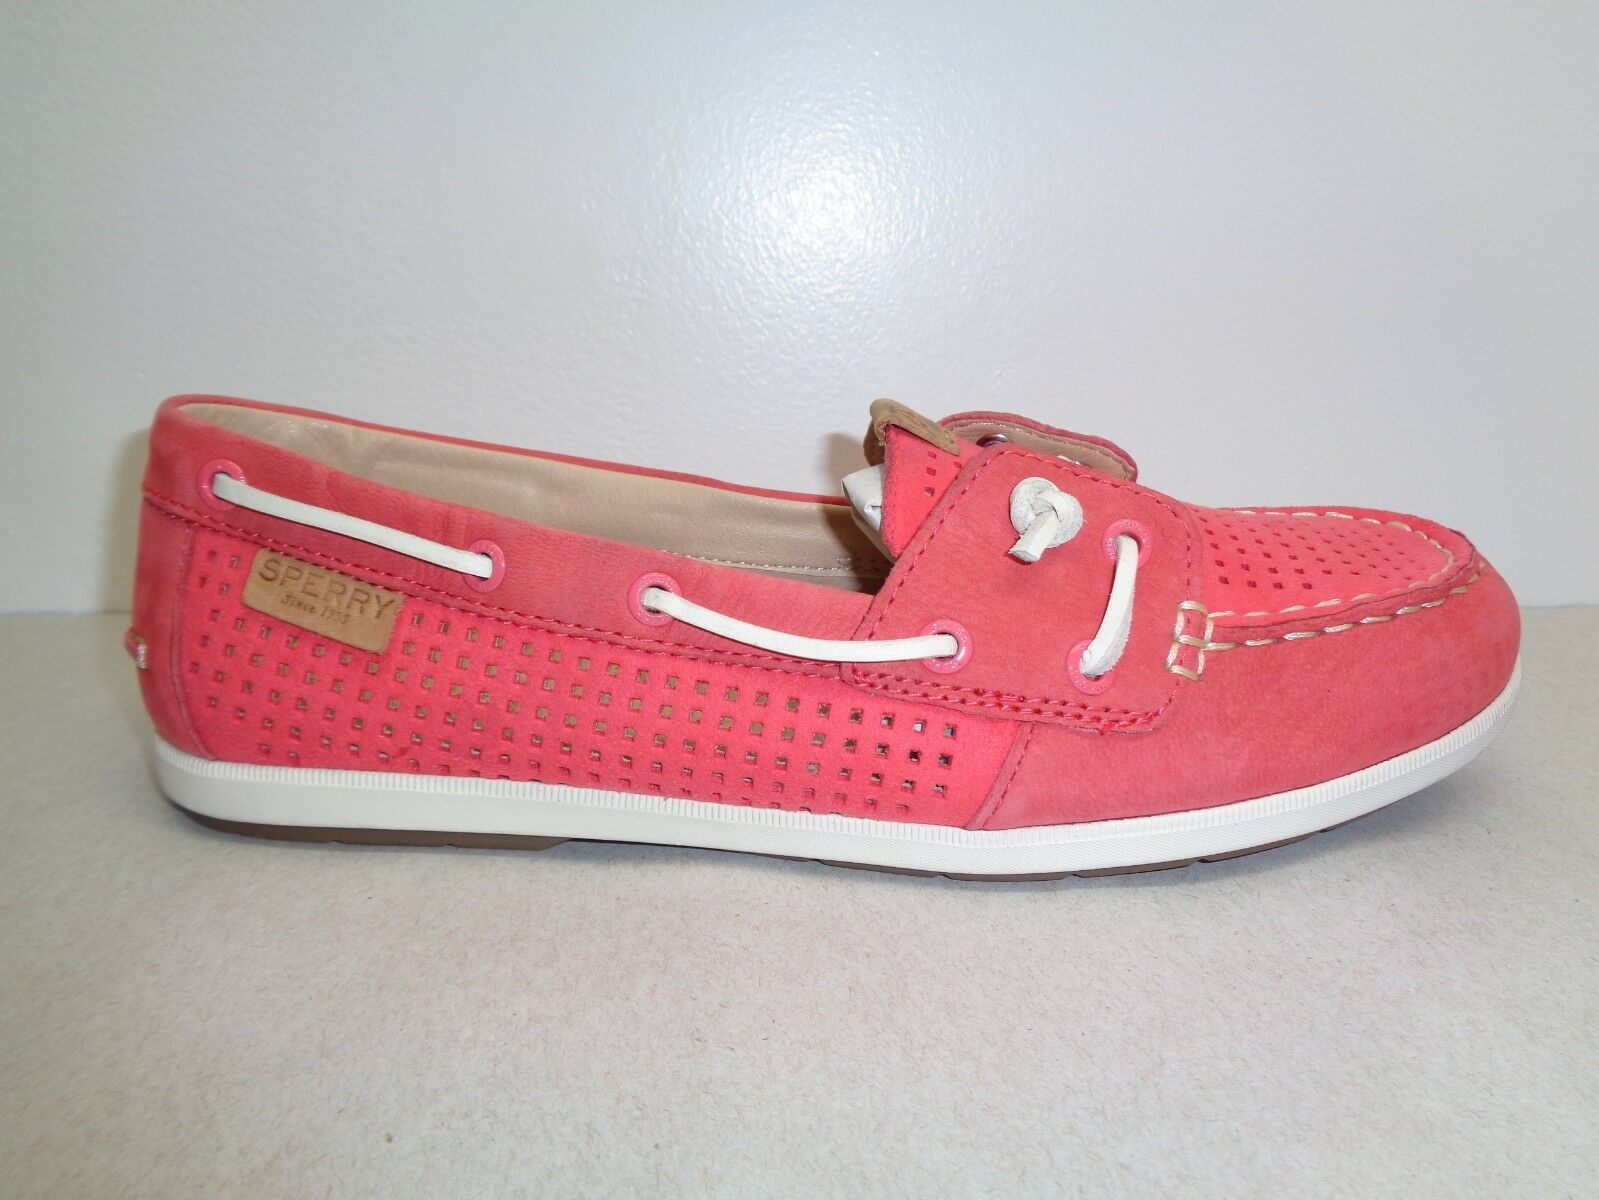 Sperry Top Sider Size 8.5 M COIL IVY PERF Rose Pelle Boat Shoes New Donna